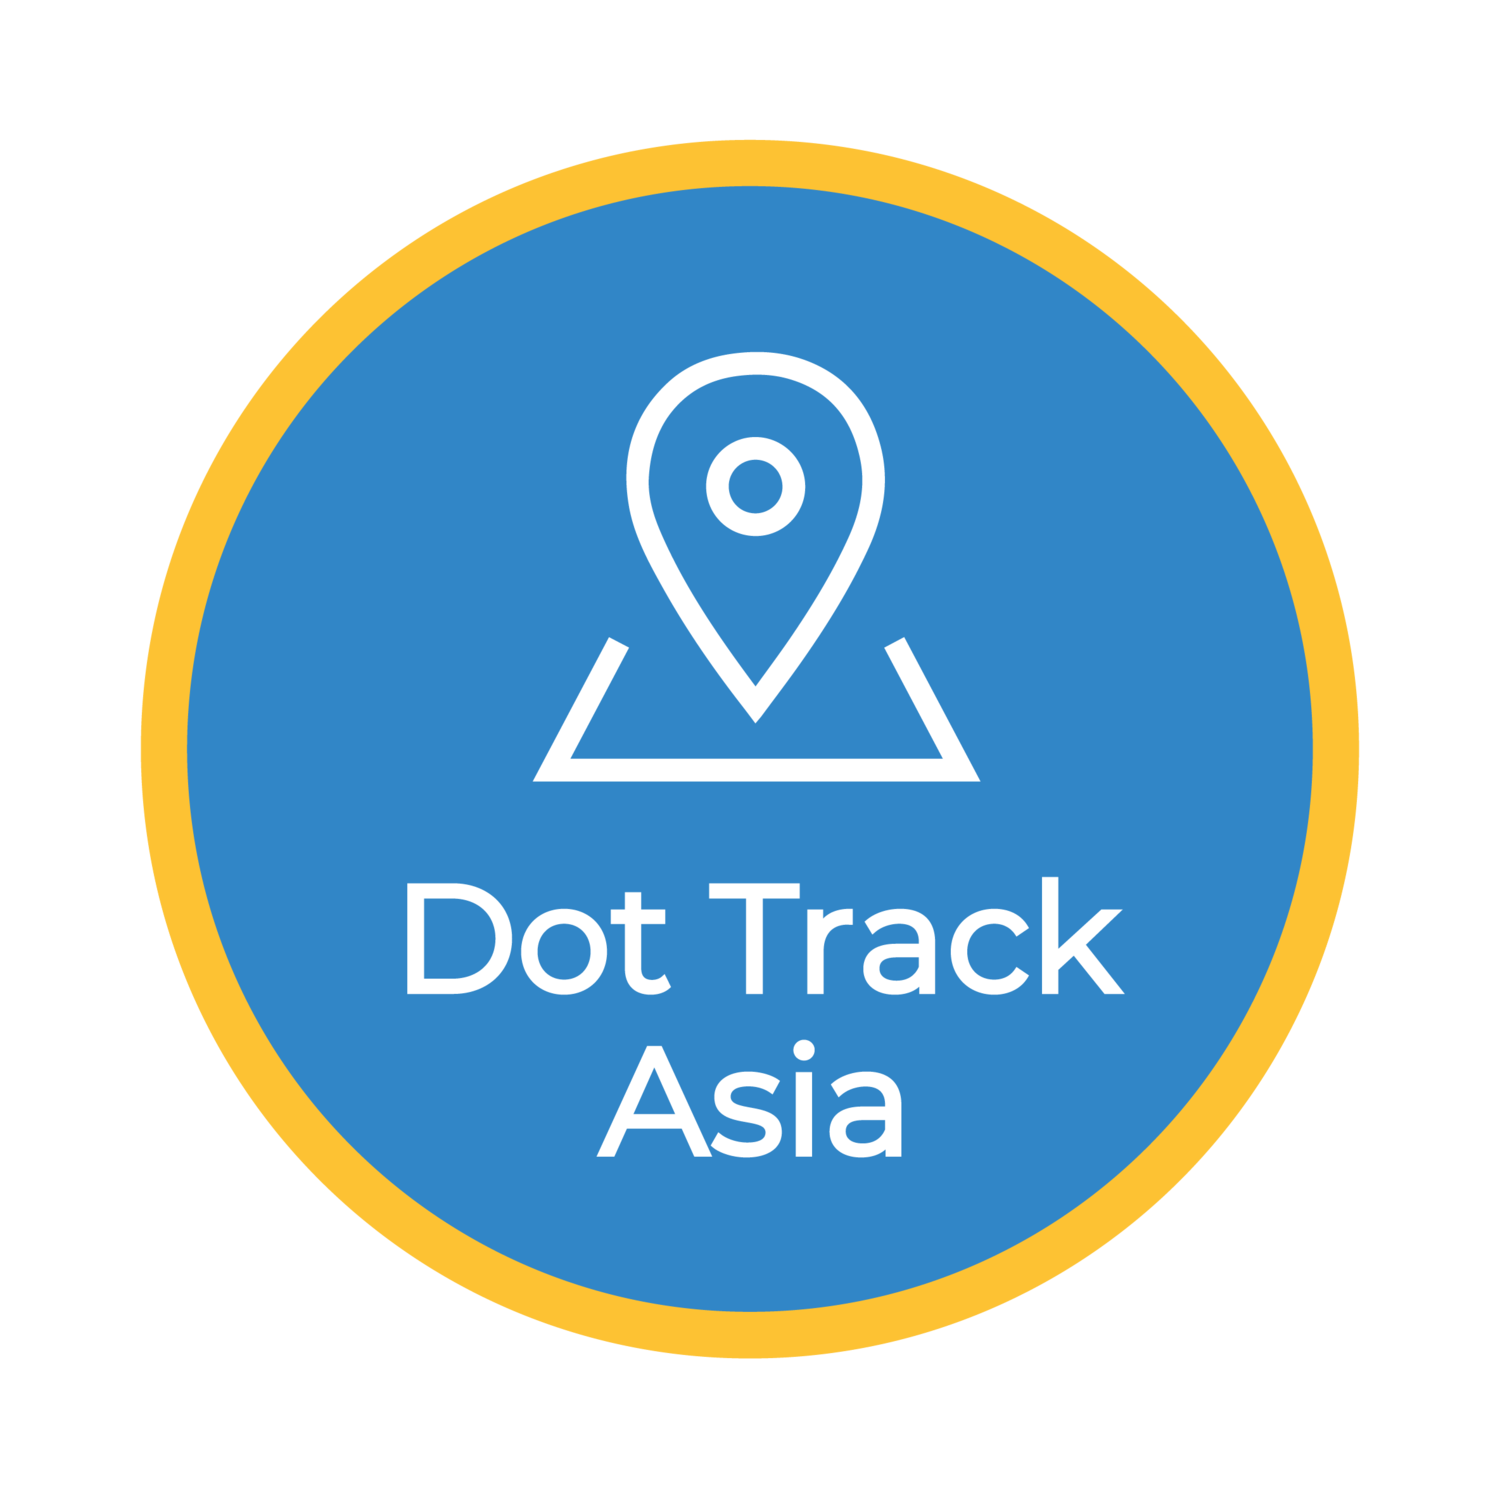 Dot Track Asia